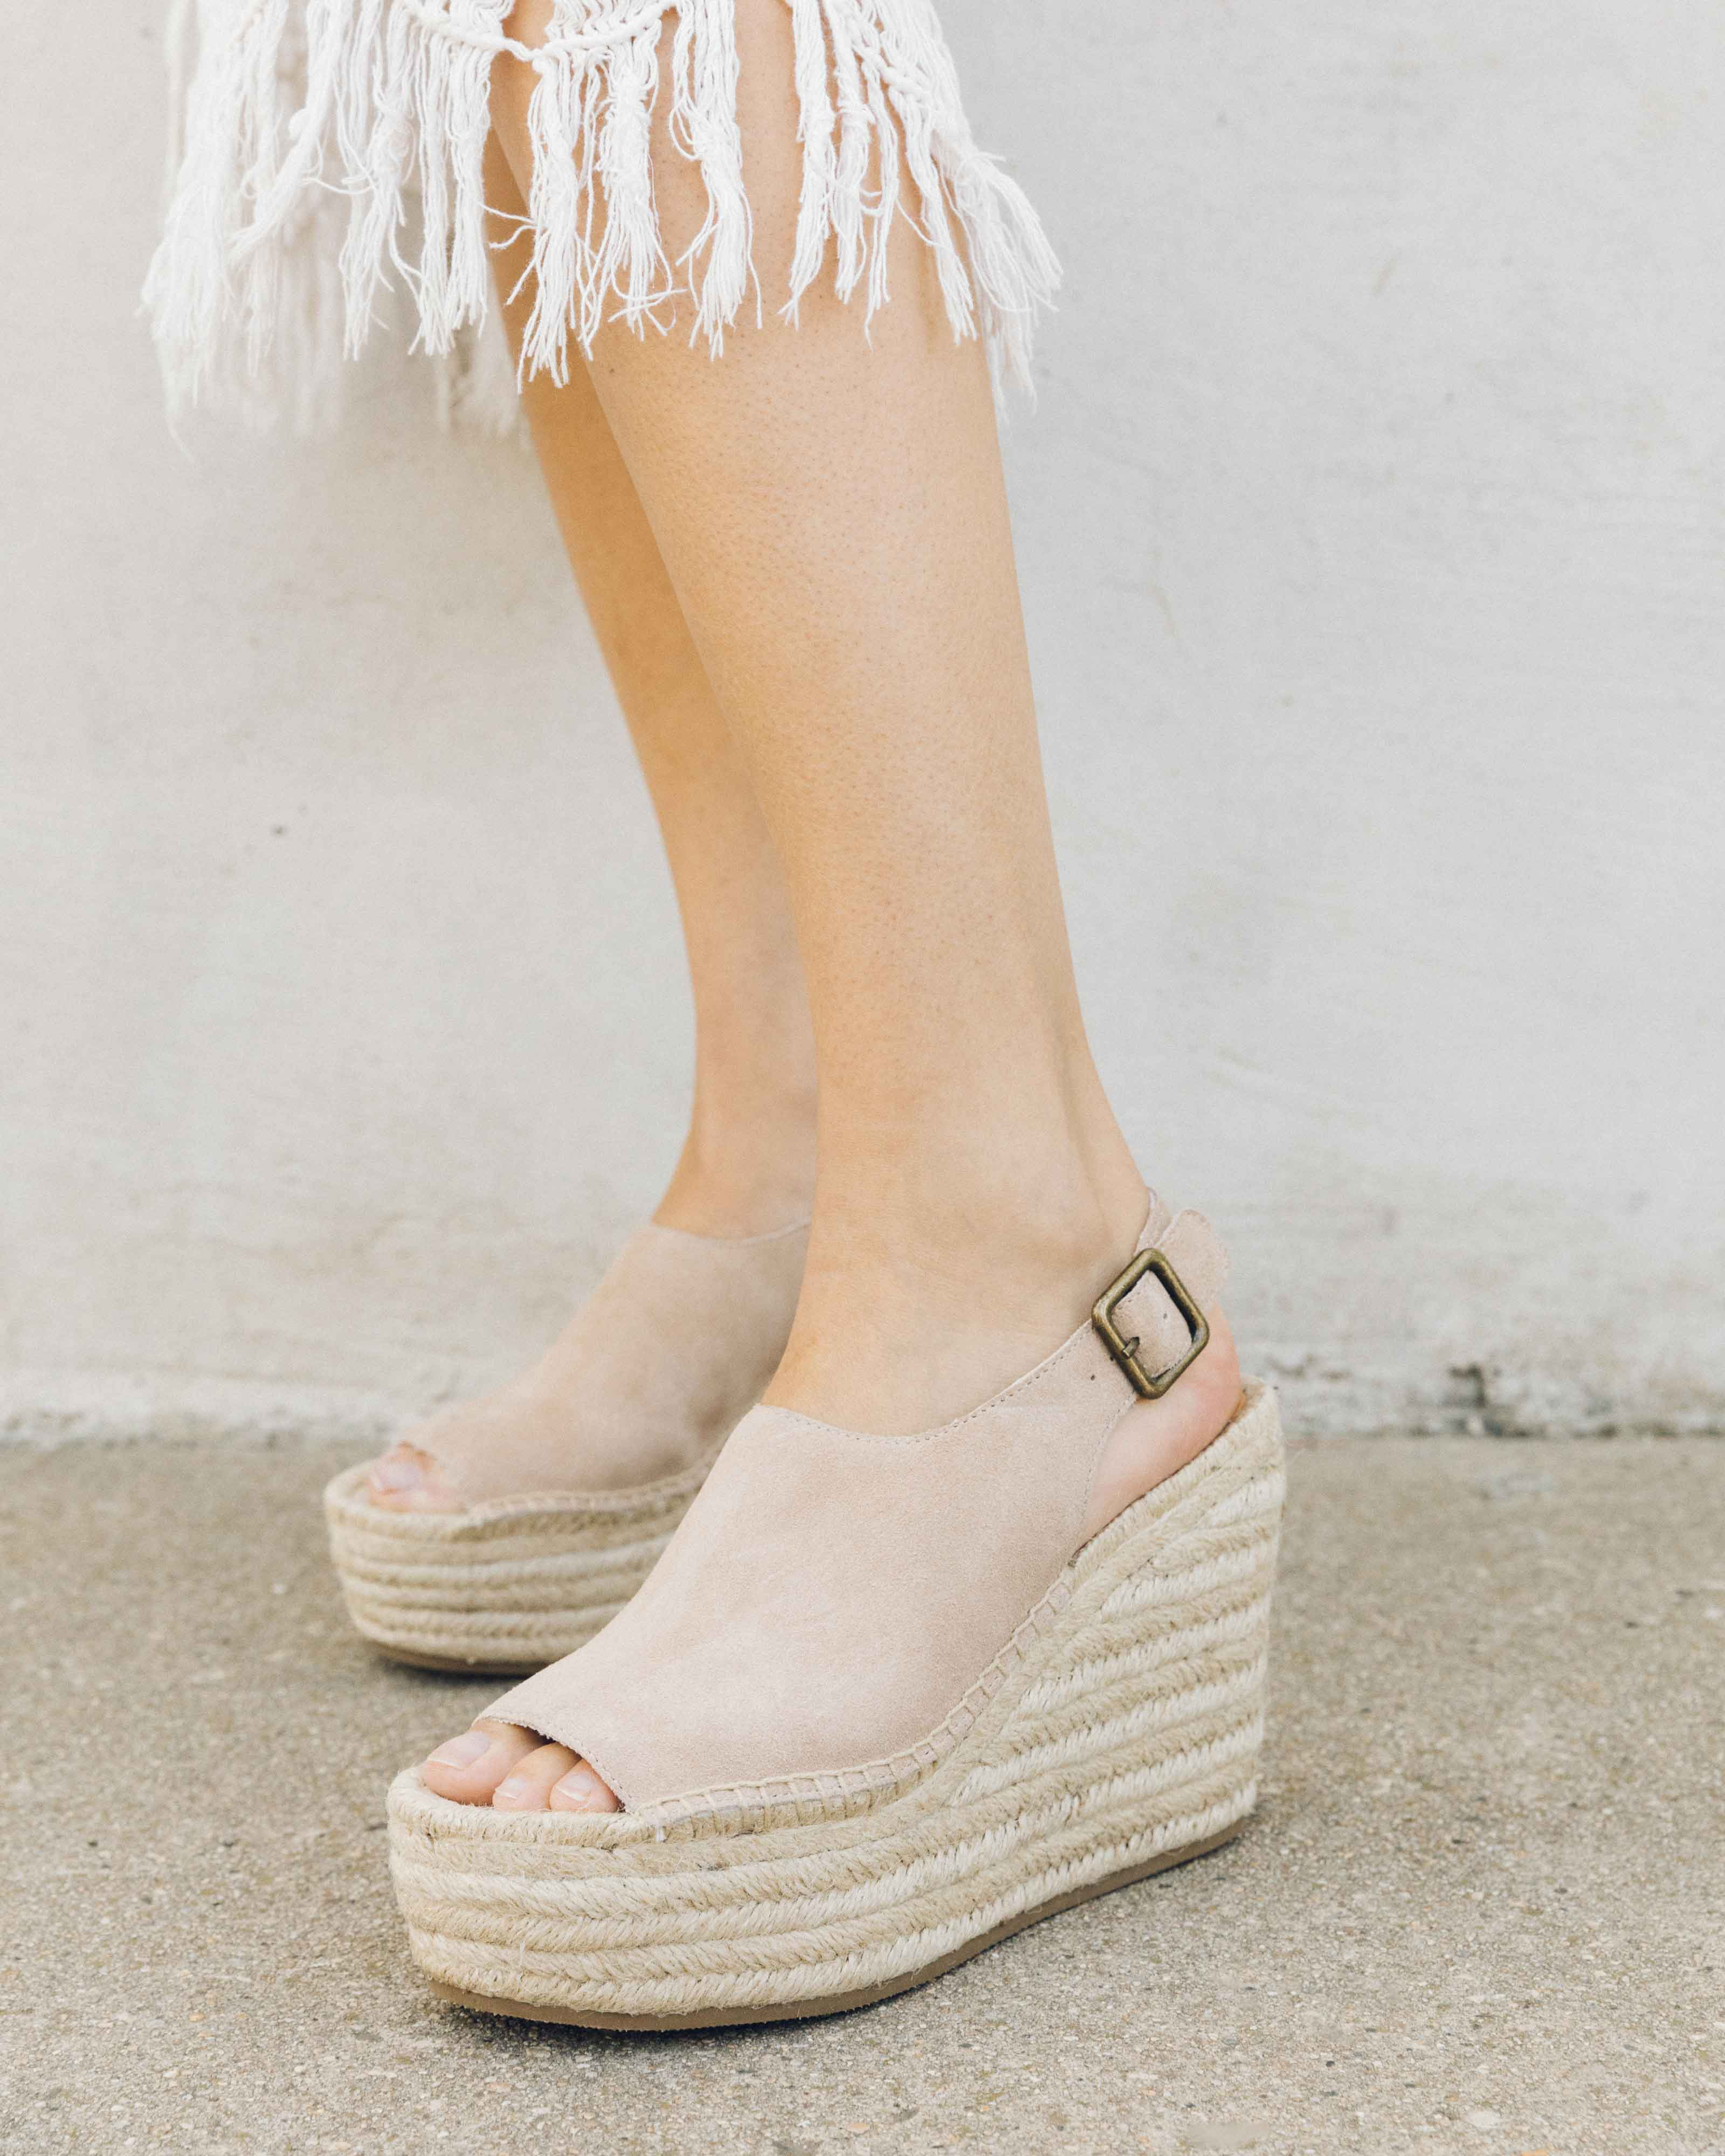 buy cheap big sale collections online Soludos Sevilla Platform Wedge sale official 4CEsJwgZ